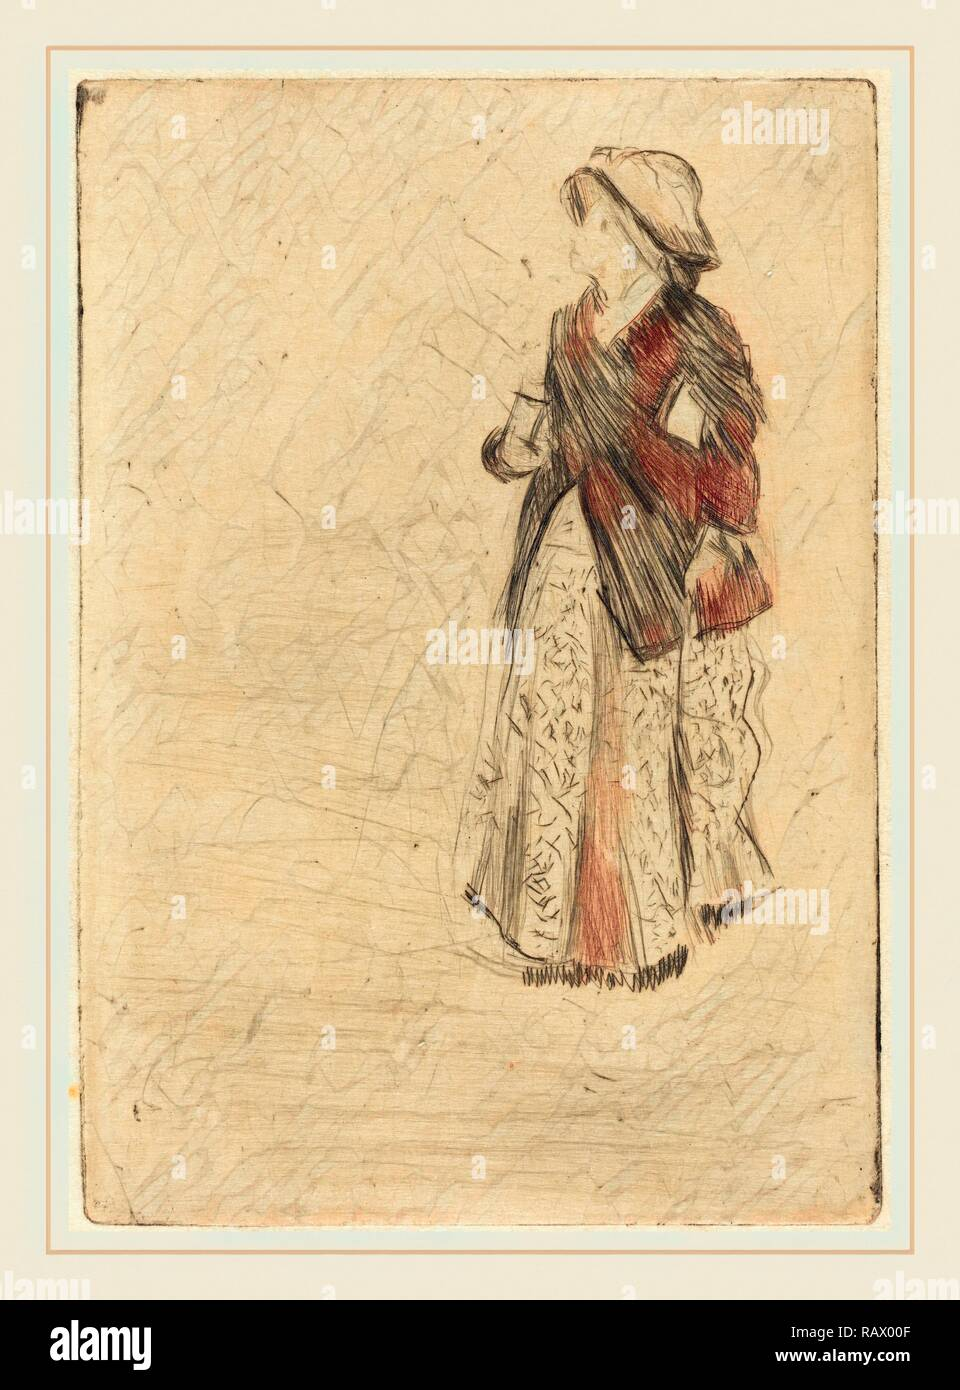 Edgar Degas, French (1834-1917), The Actress Ellen Andrée, 1879, drypoint (electric crayon). Reimagined - Stock Image